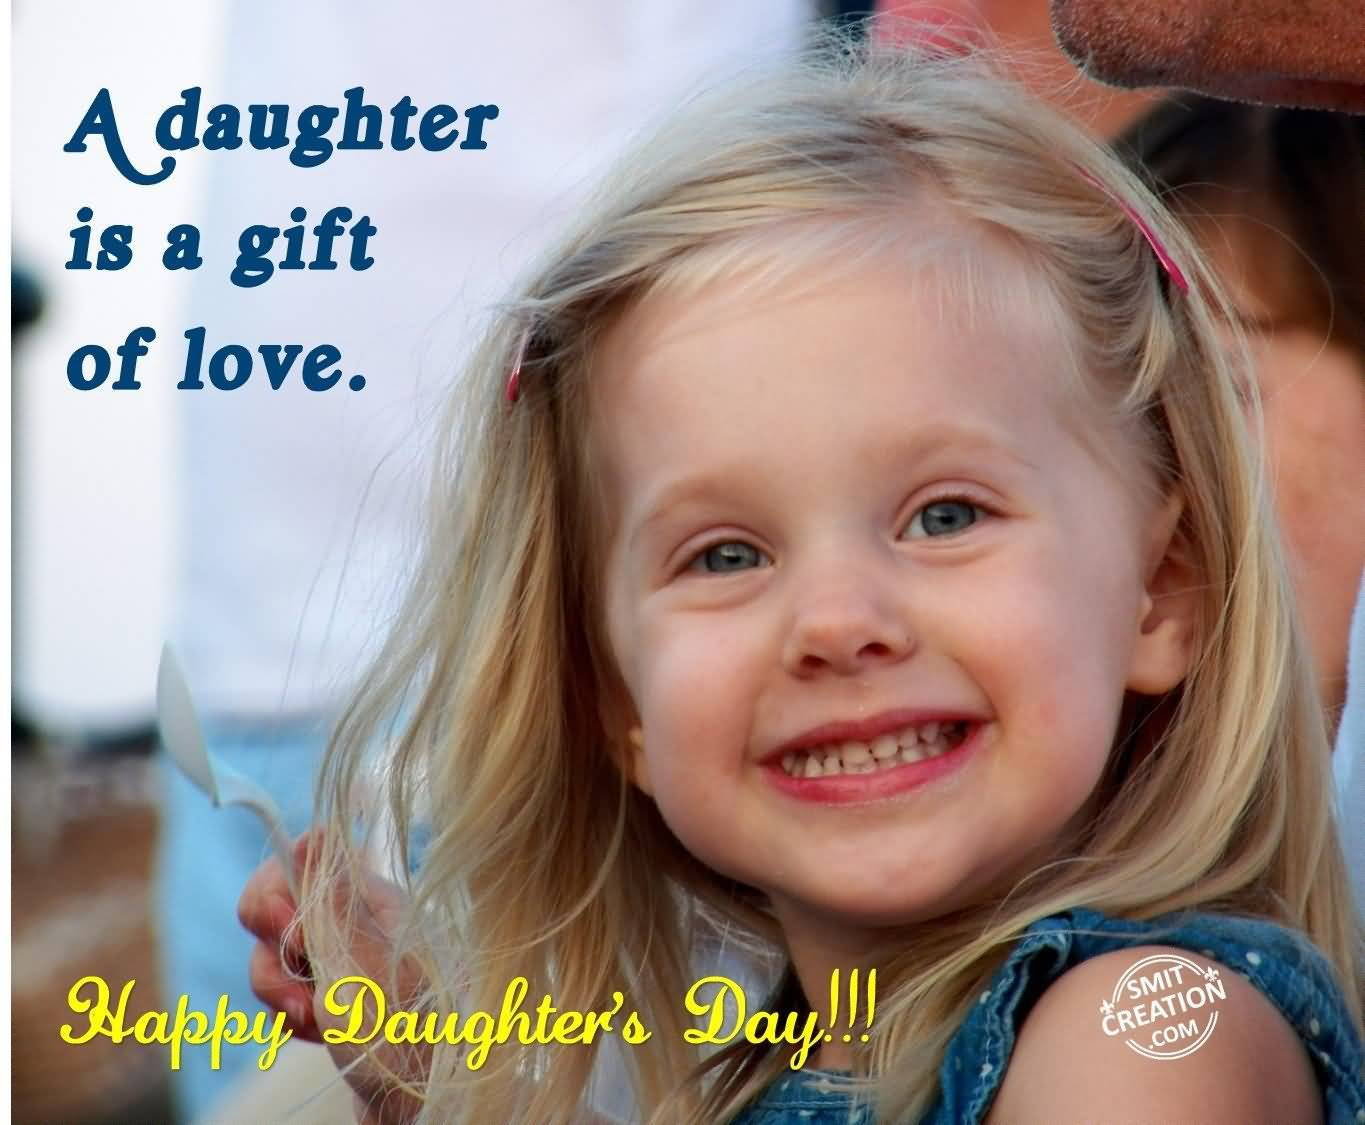 42 latest happy daughters day greeting pictures a daughter is a gift of love happy daughters day 2016 greetings kristyandbryce Images